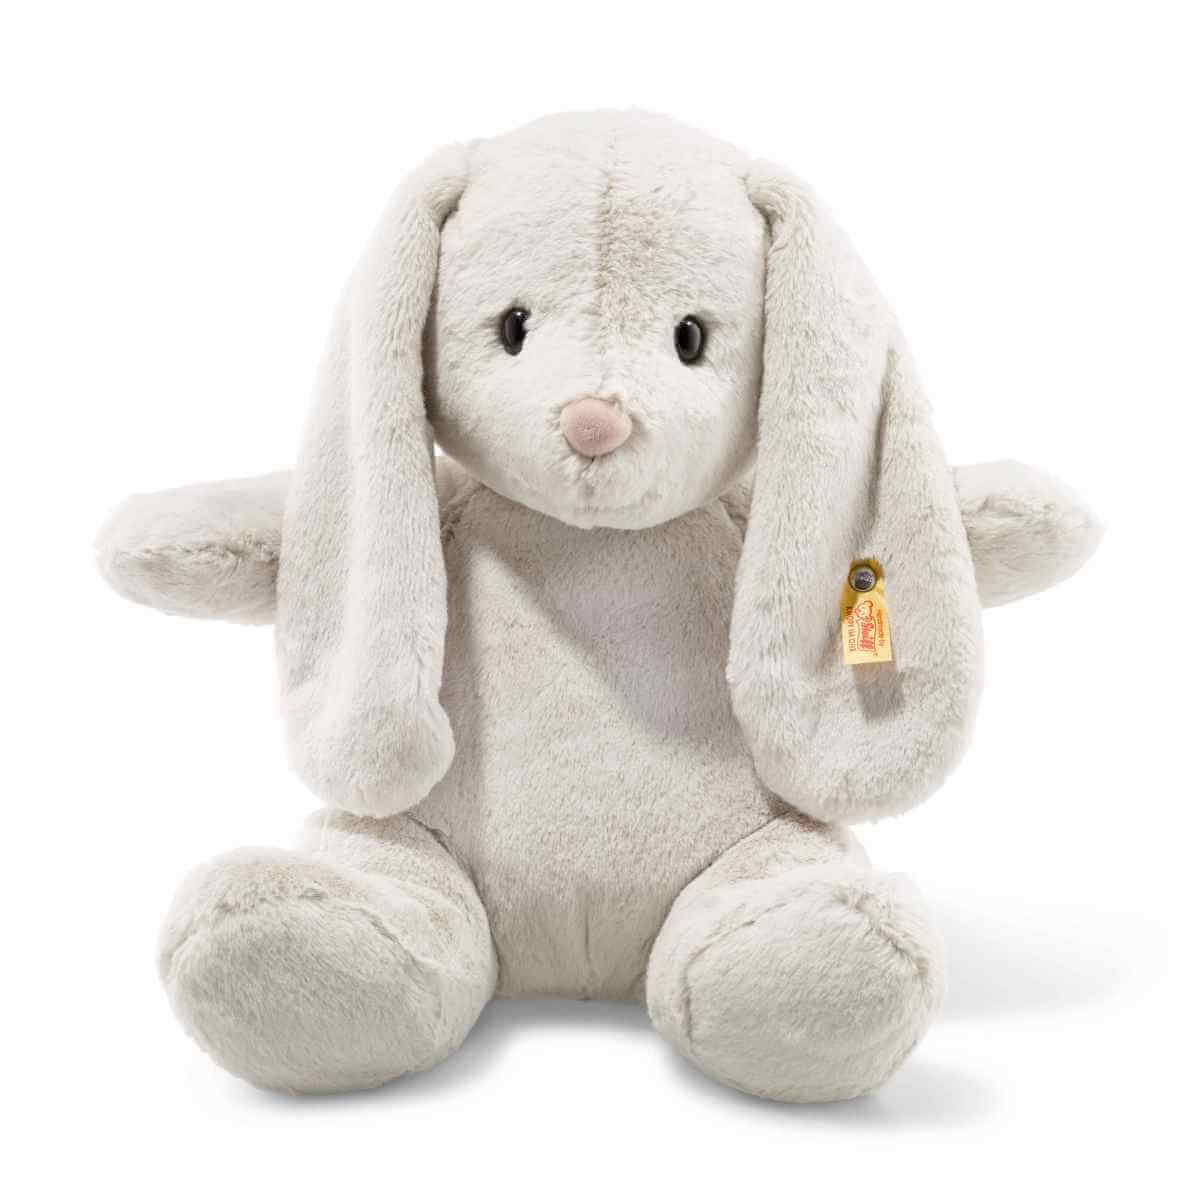 Iepure Hoppie 38cm (Soft Cuddly Friends)